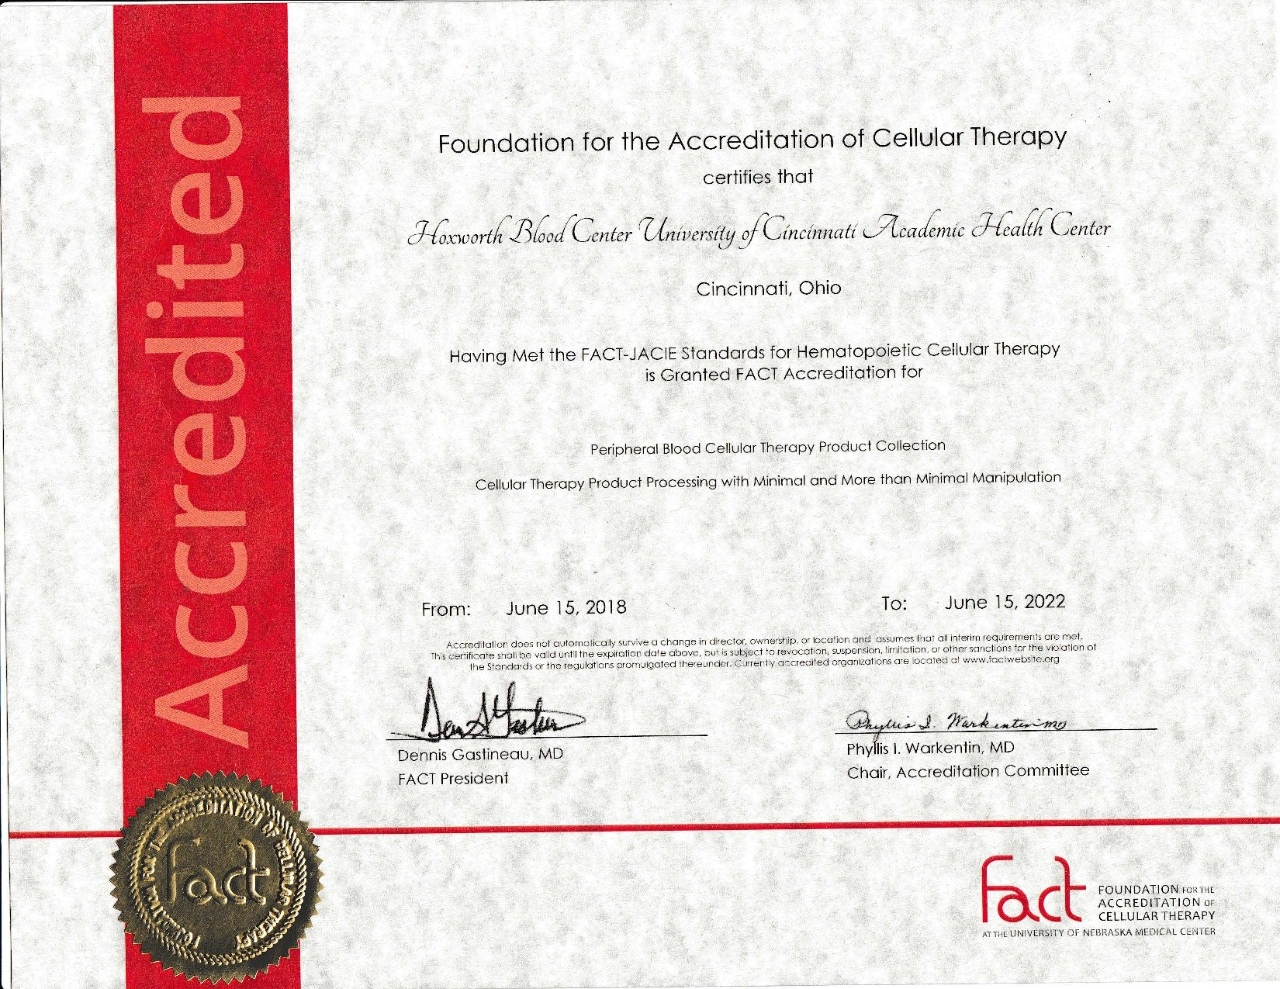 Accreditation from FACT (Foundation for the Accreditation of Cellular Therapy) for Hoxworth Blood Center